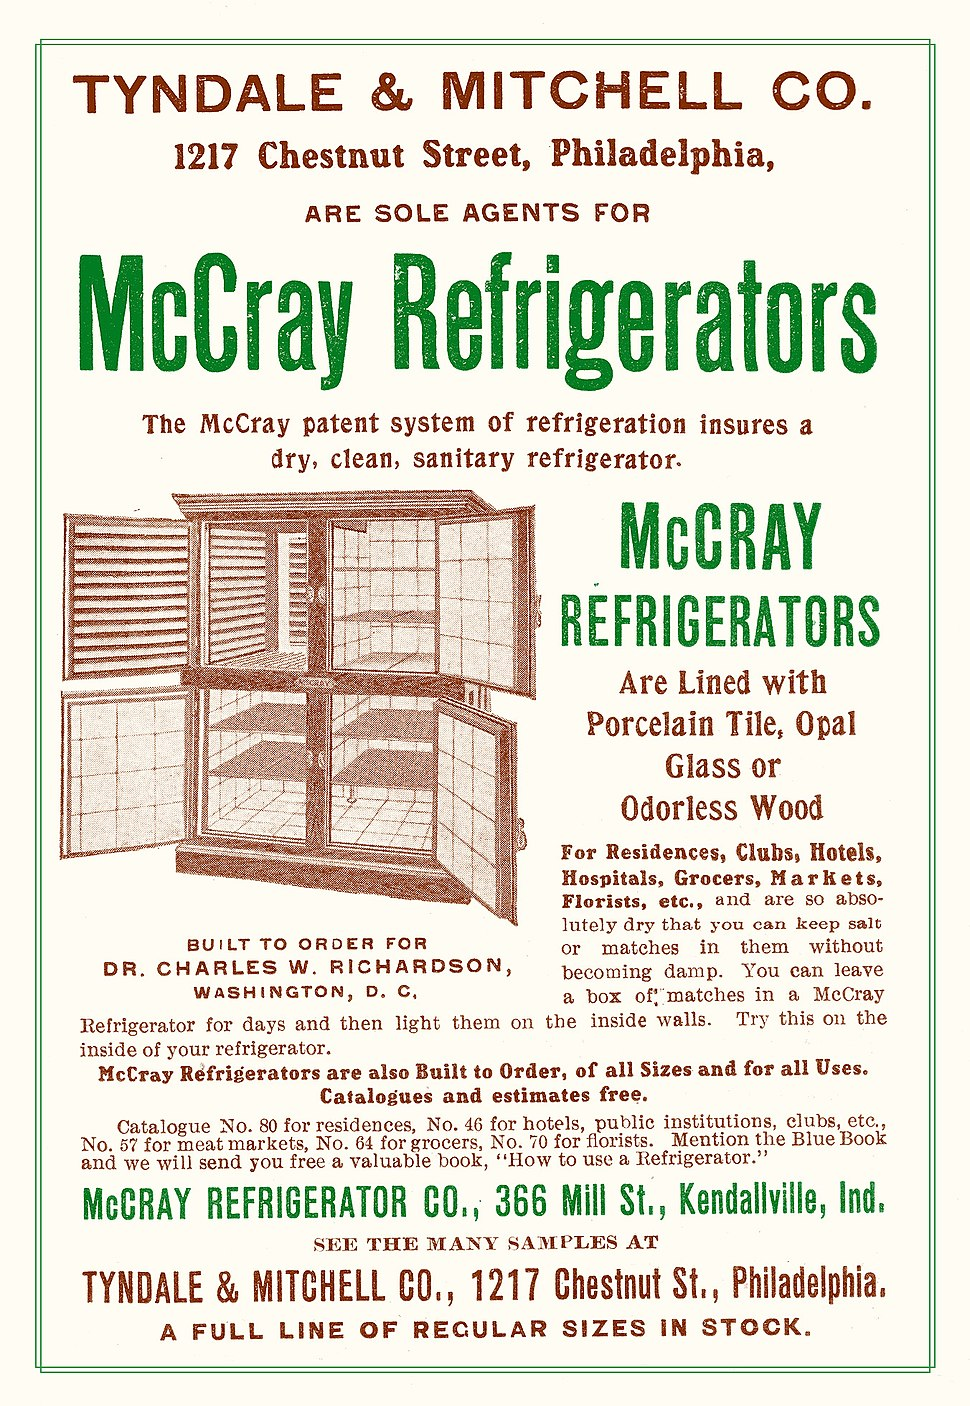 Commercial Refrigerator Advertisement 1905